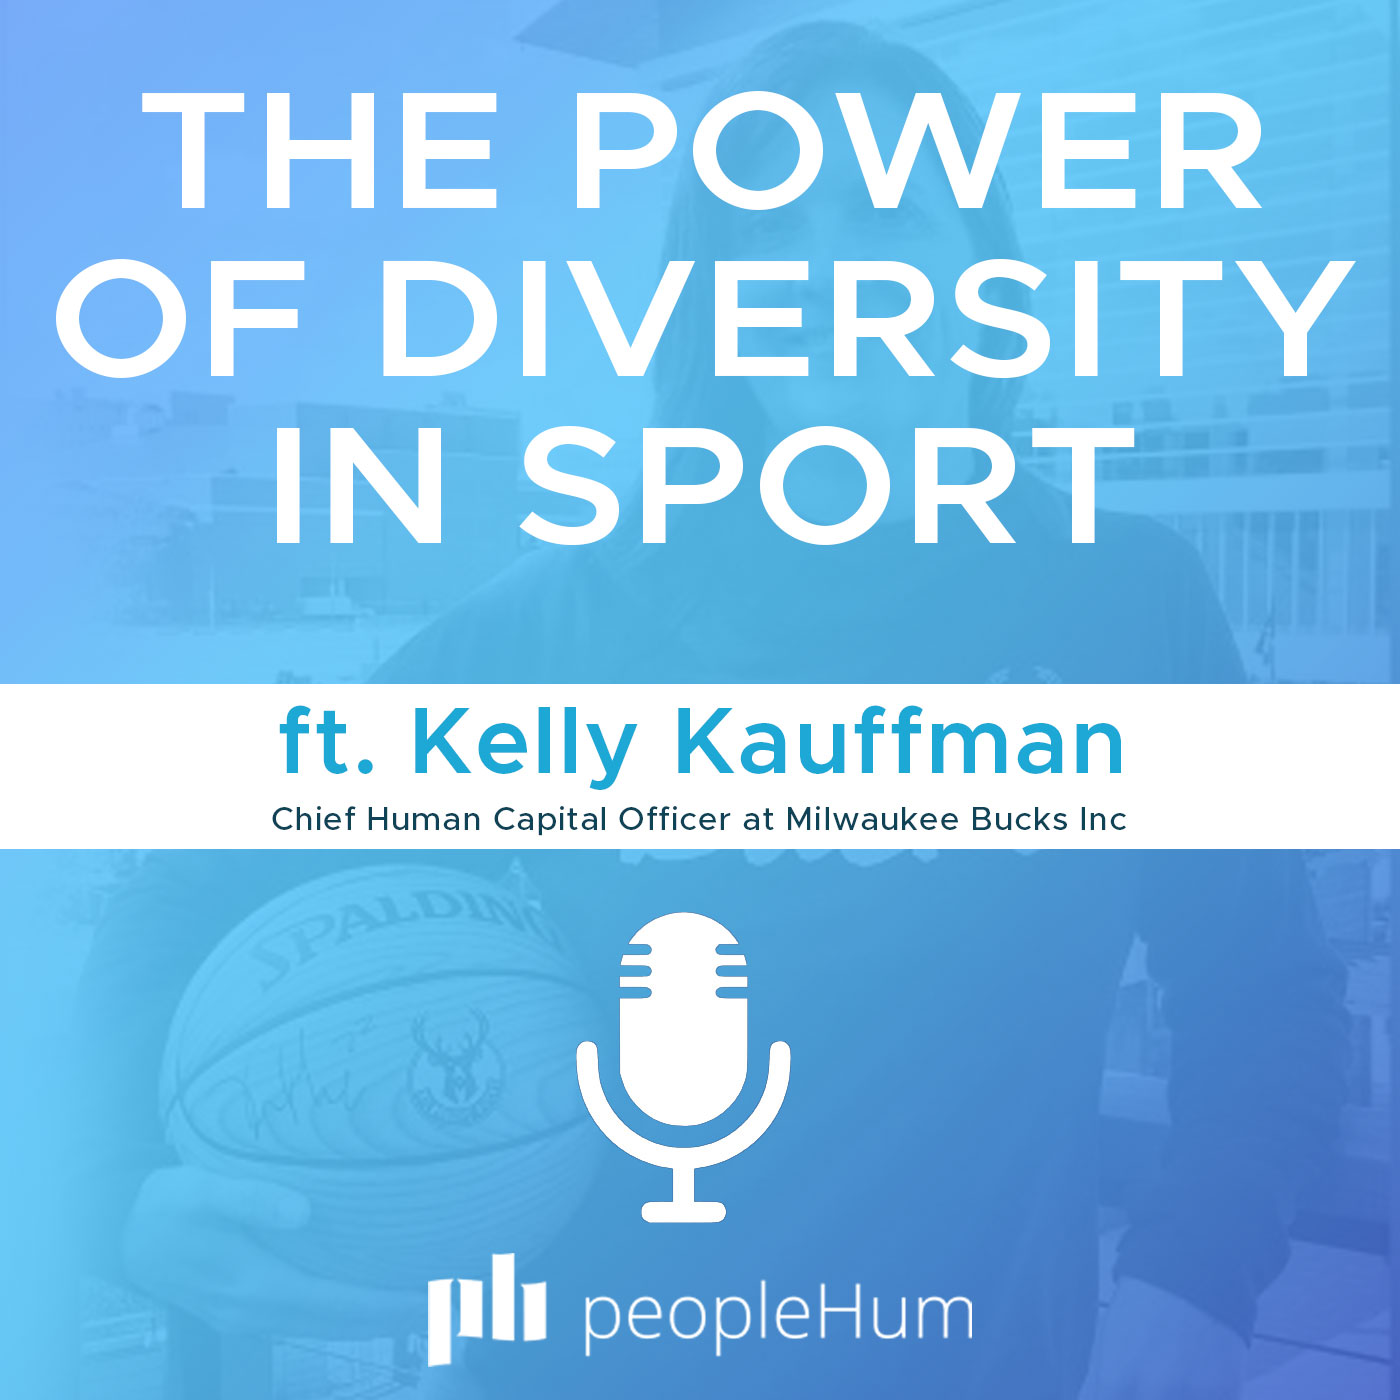 The power of diversity in sport, ft. Kelly Kauffman